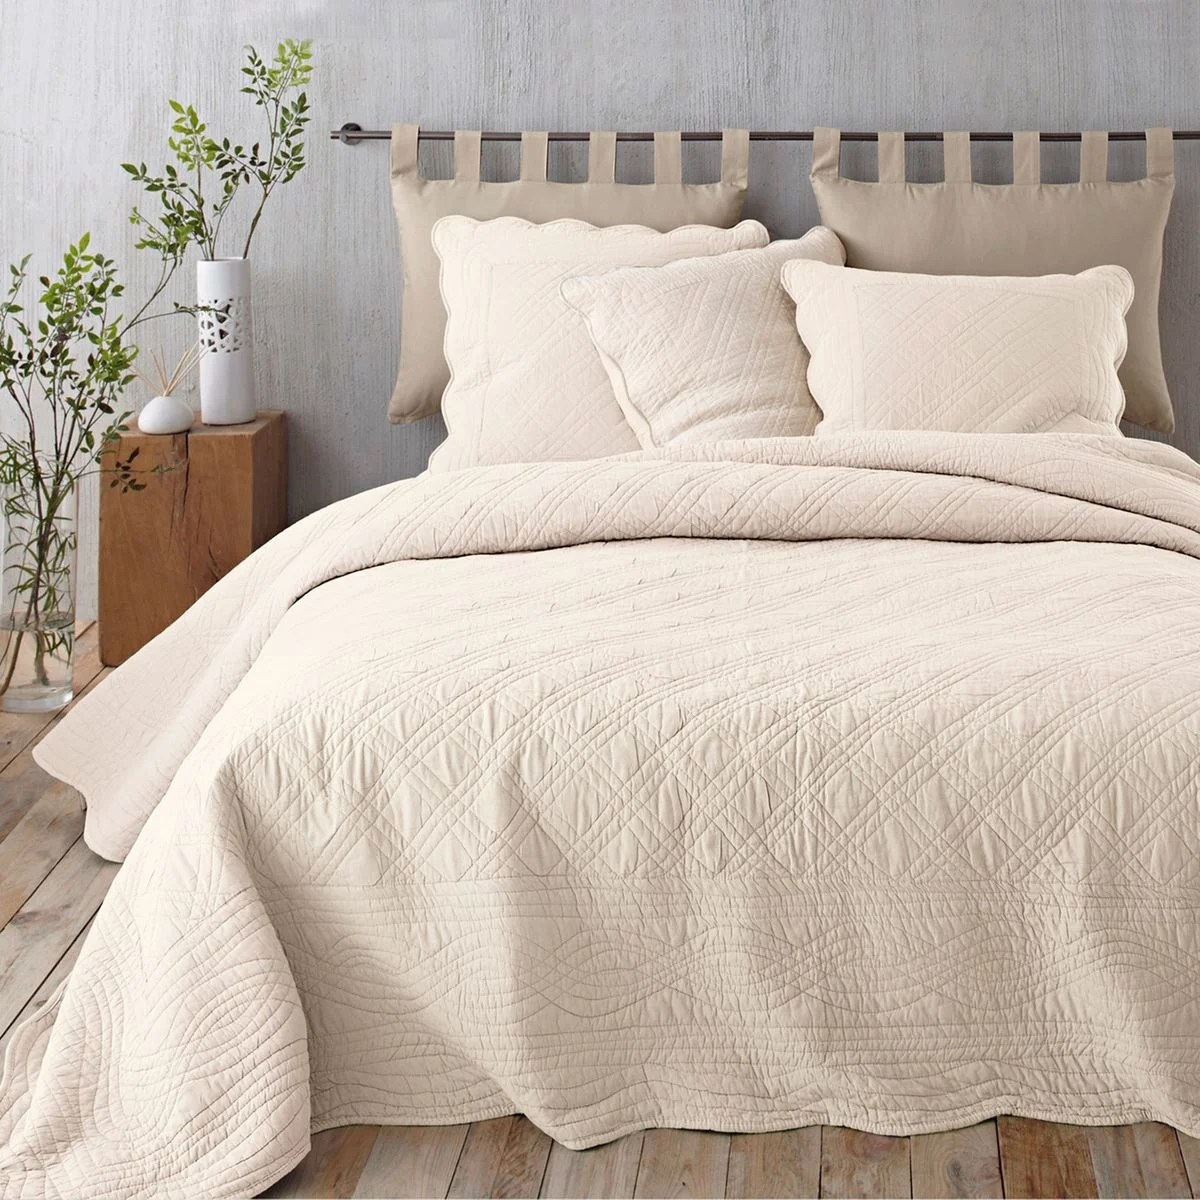 Boutis Beige Et Taupe Top Boutis Matelass Scenario With